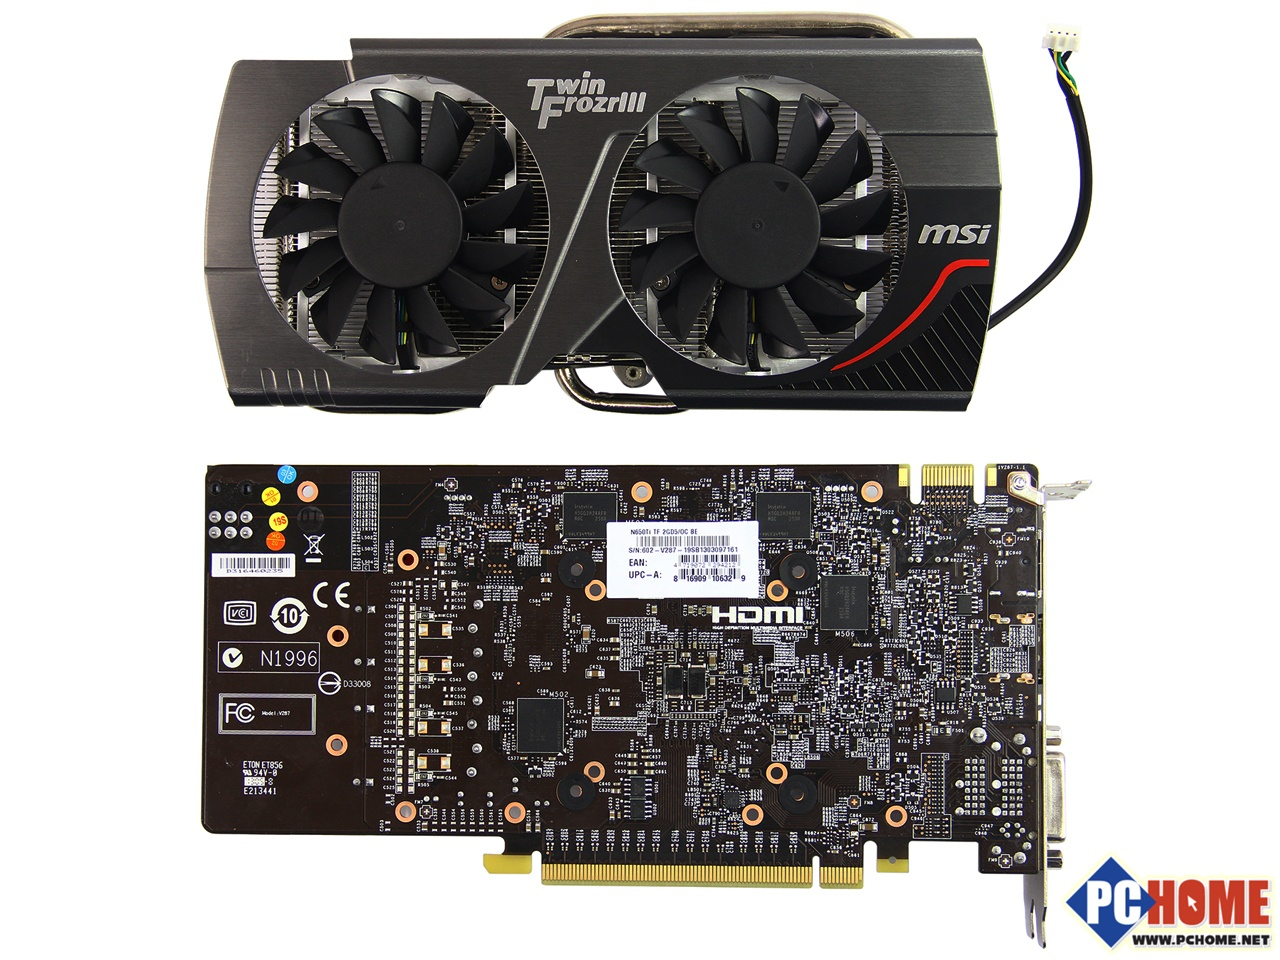 MSI GTX 650 Ti Boost TwinFrozr Gaming (15)